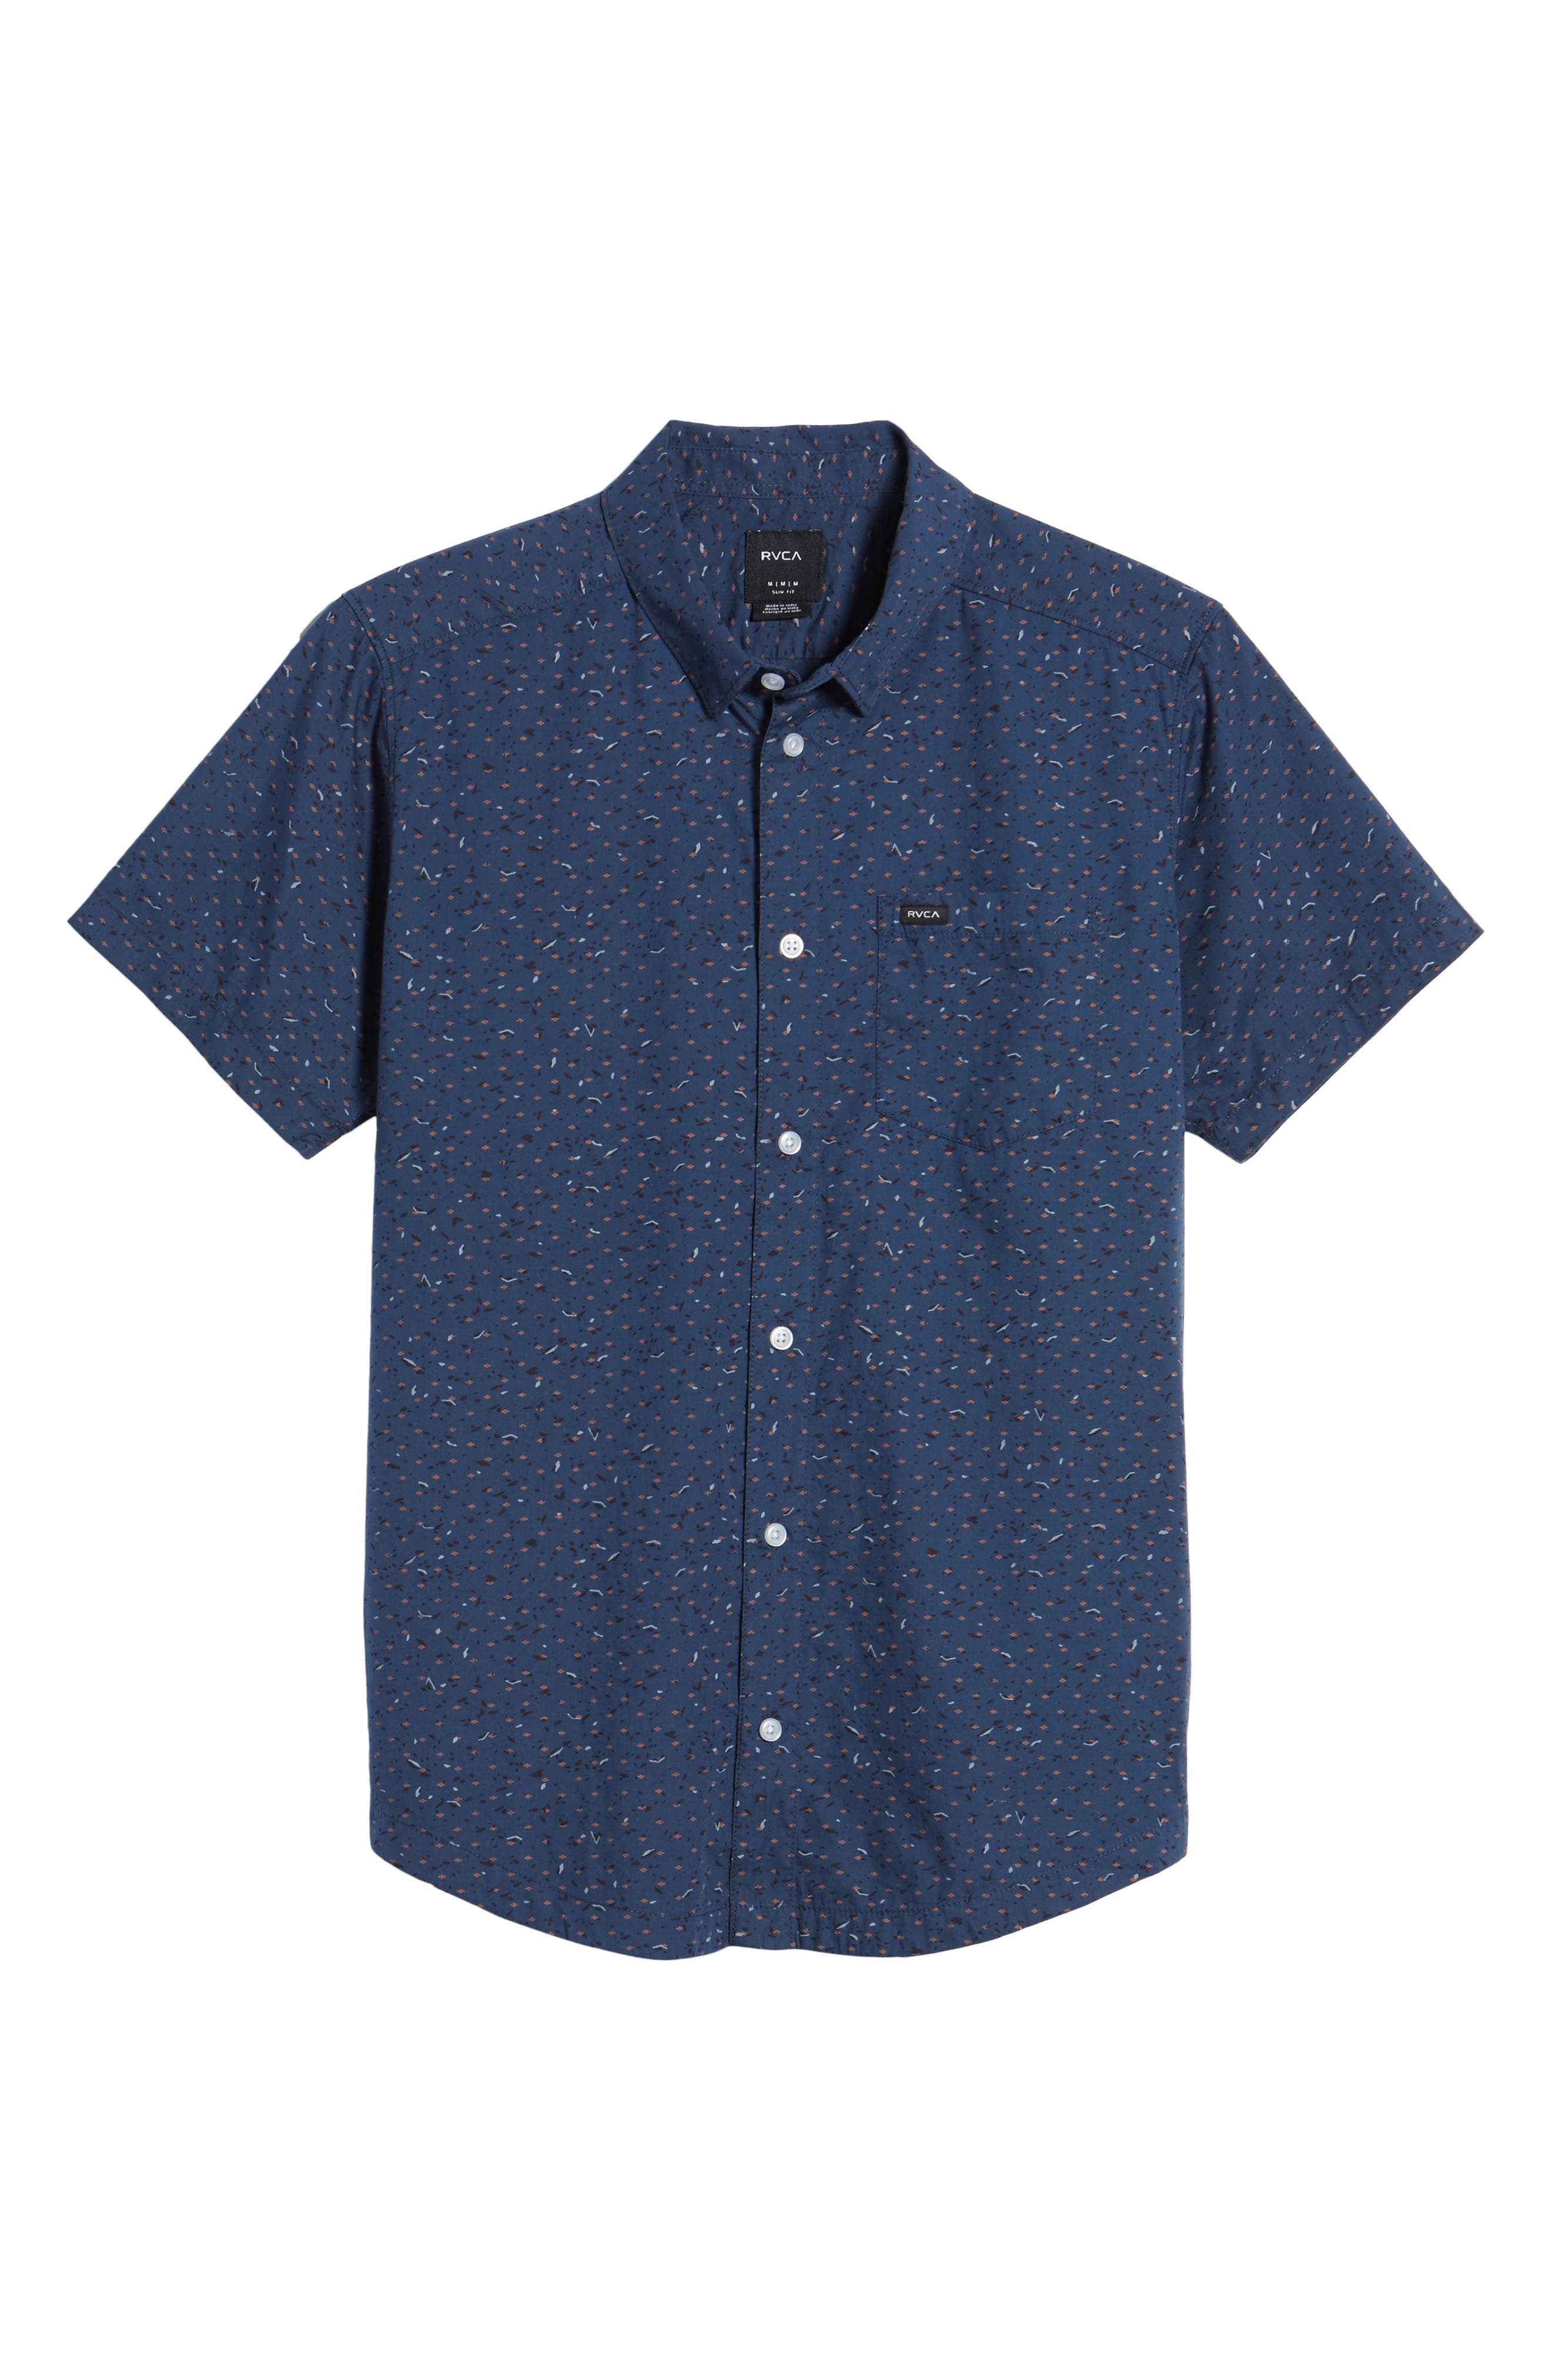 Jaded Woven Shirt,                             Alternate thumbnail 6, color,                             487